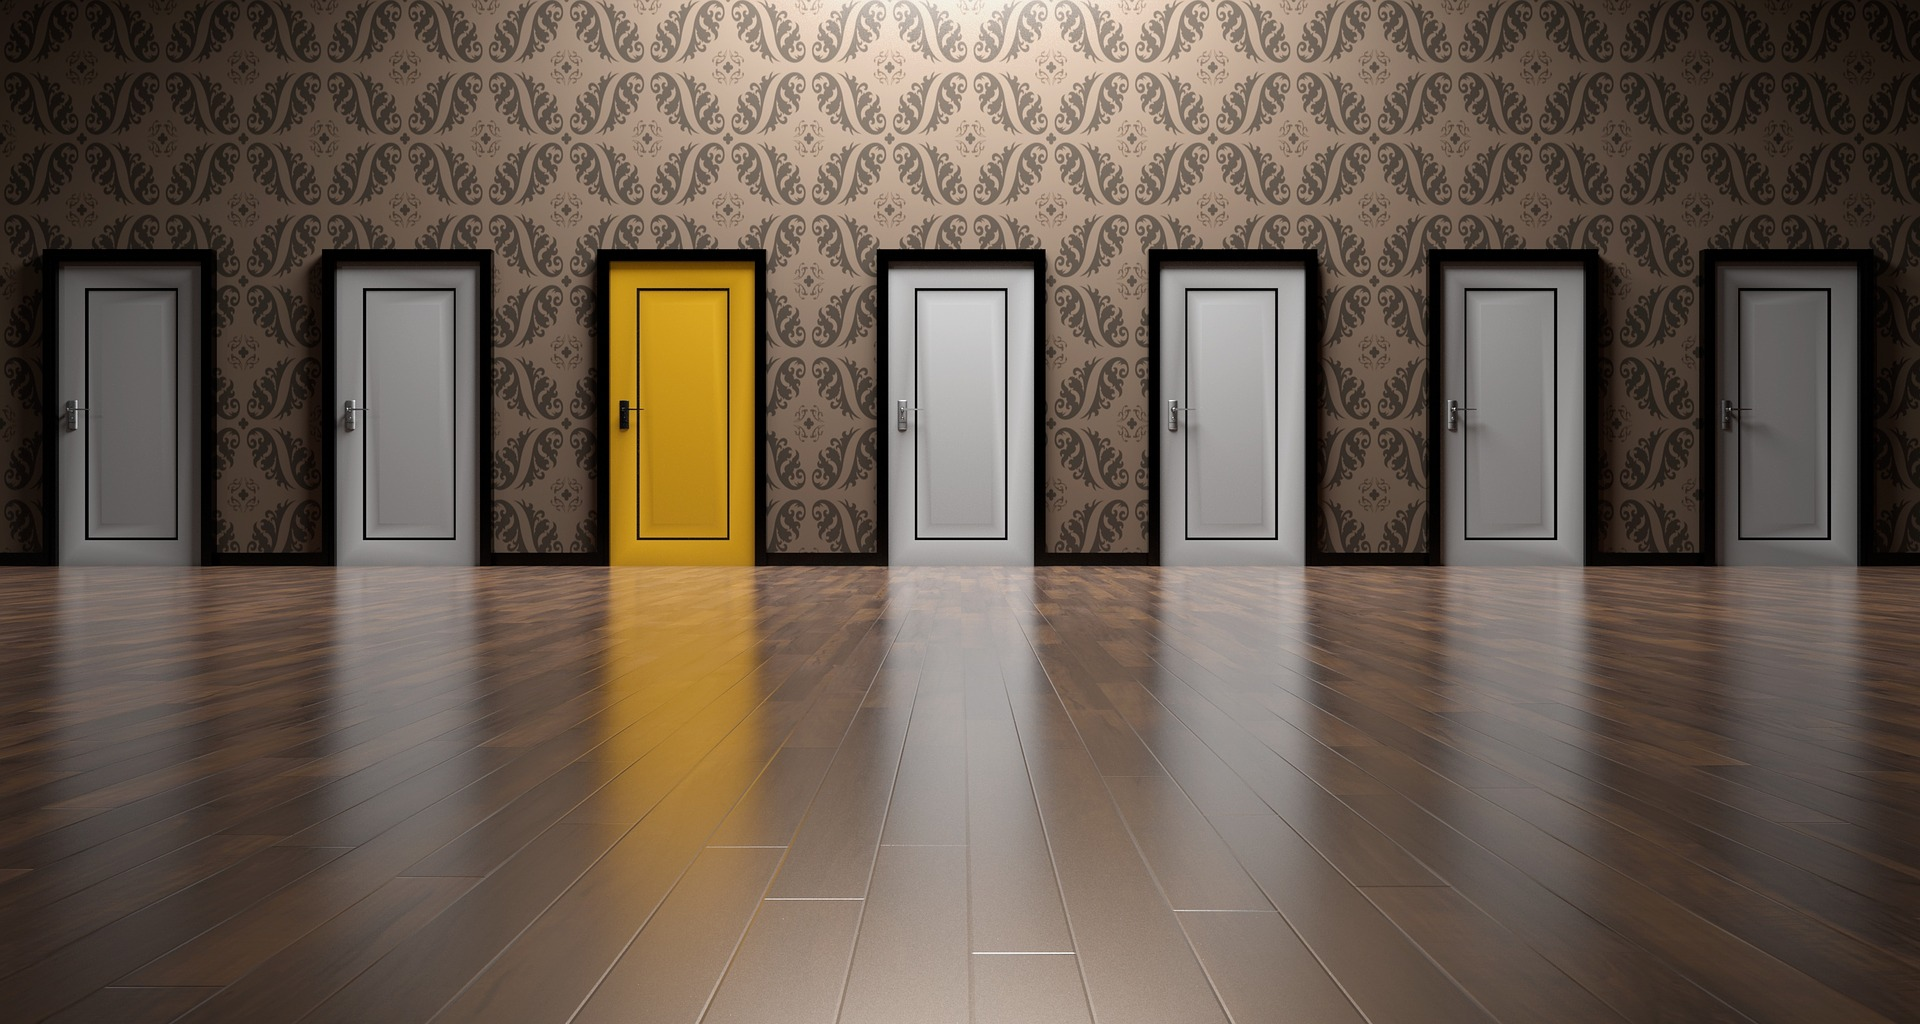 Photograph of a hallway lined with doors. One door is bright yellow while the others are white.